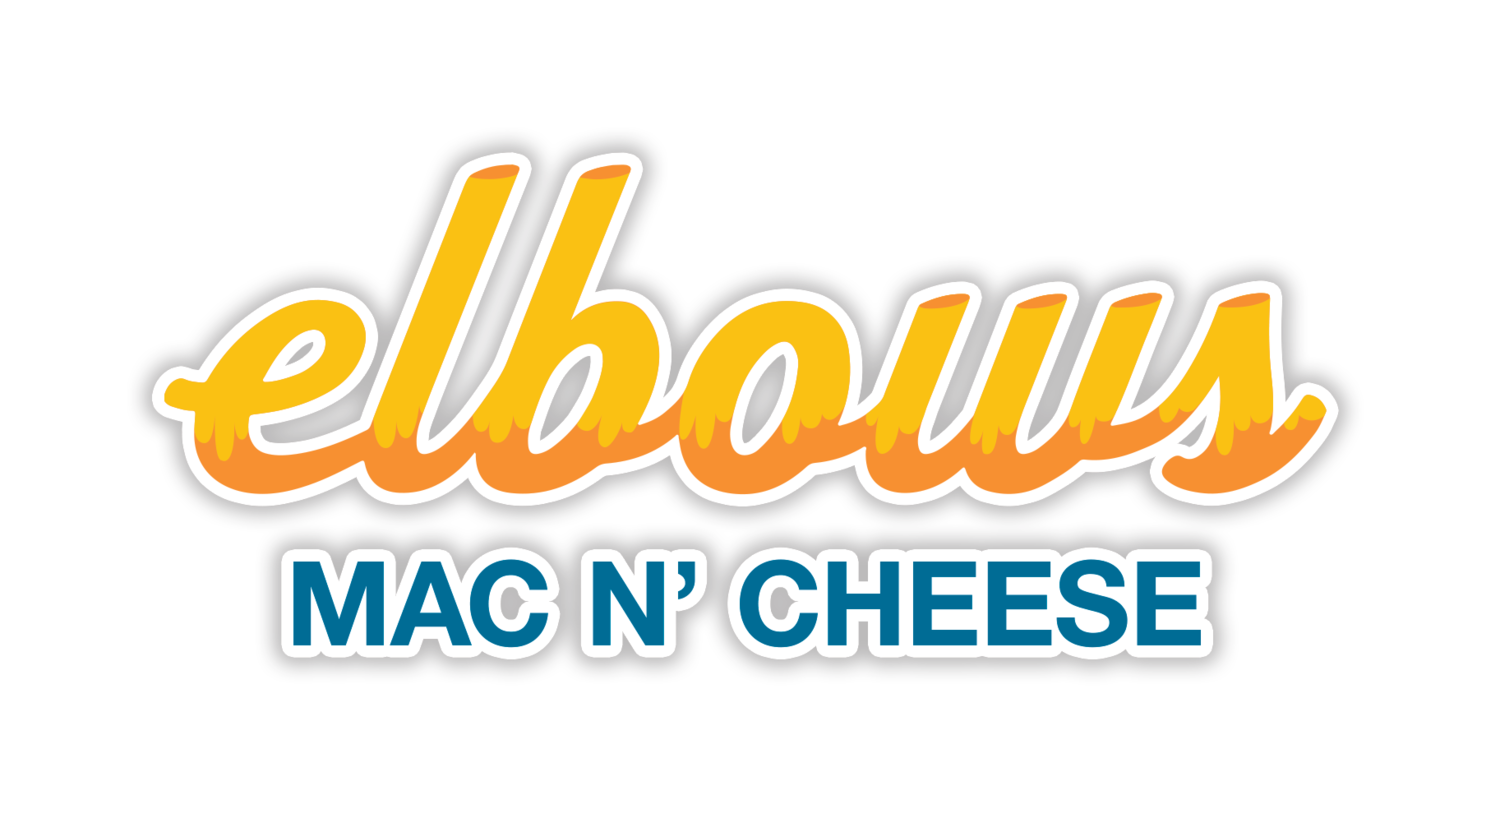 Elbows Mac N' Cheese